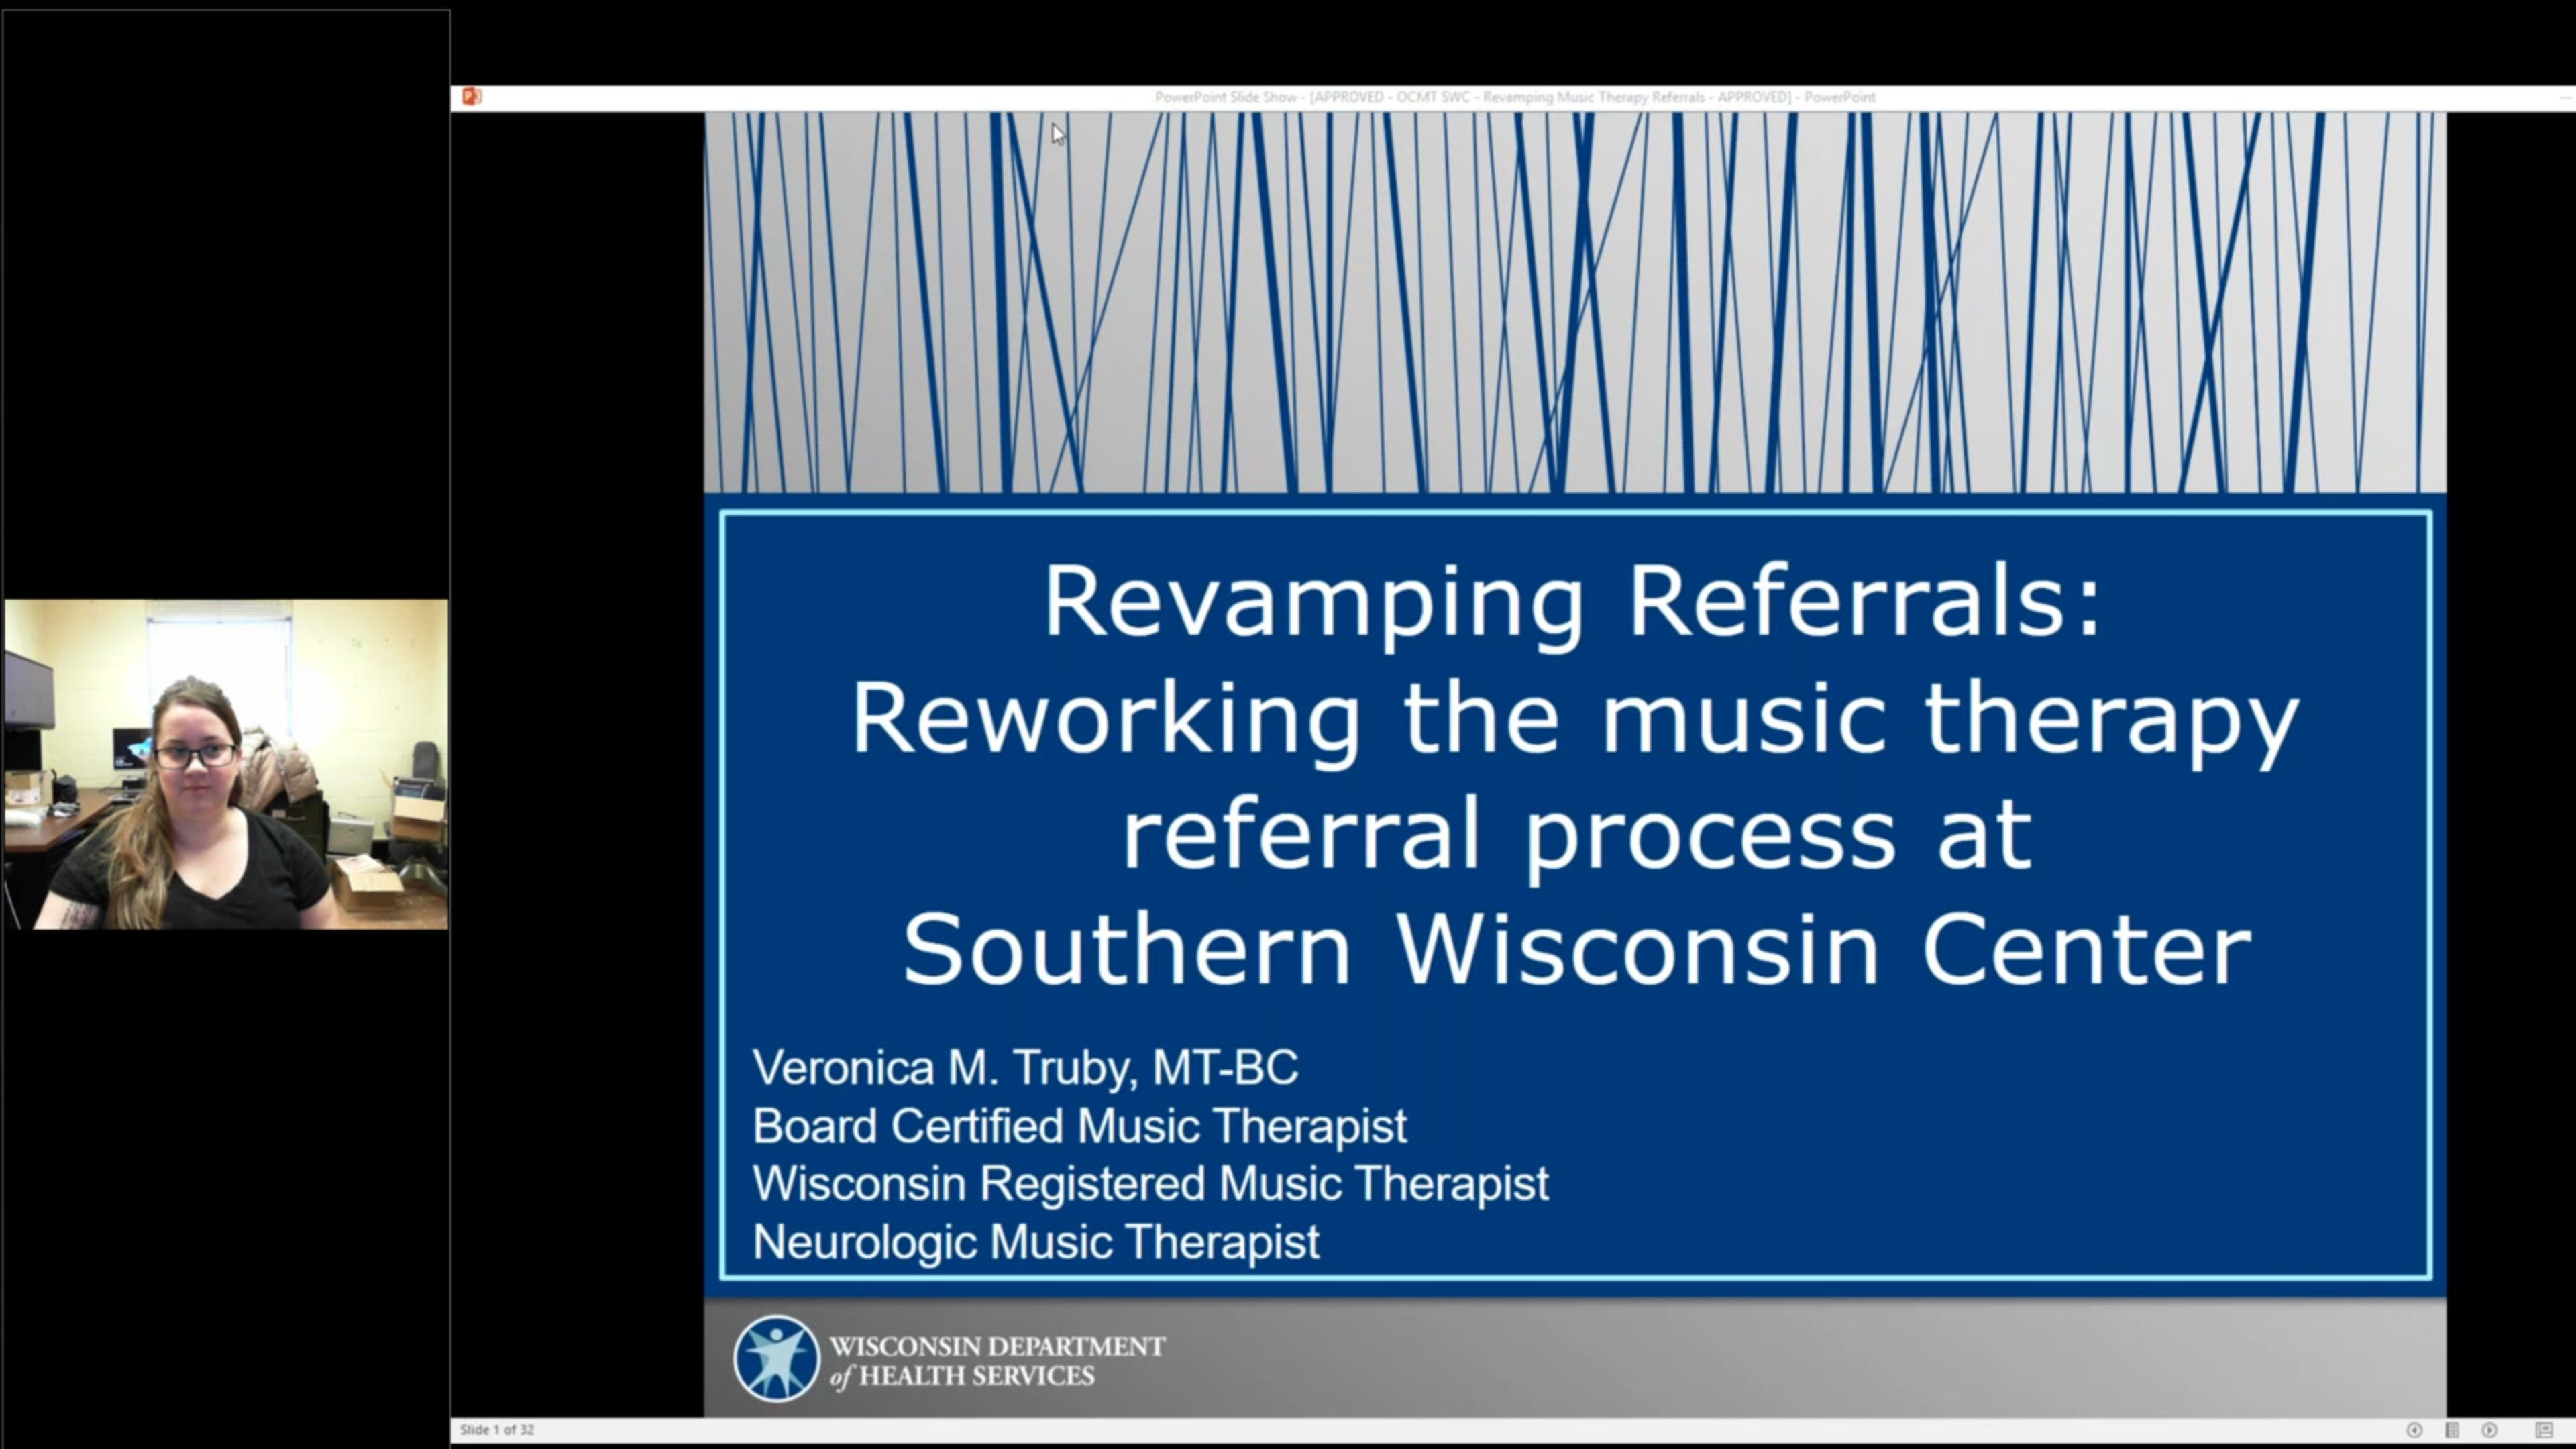 Revamping Referrals: Reworking the Music Therapy Referral Process at Southern Wisconsin Center